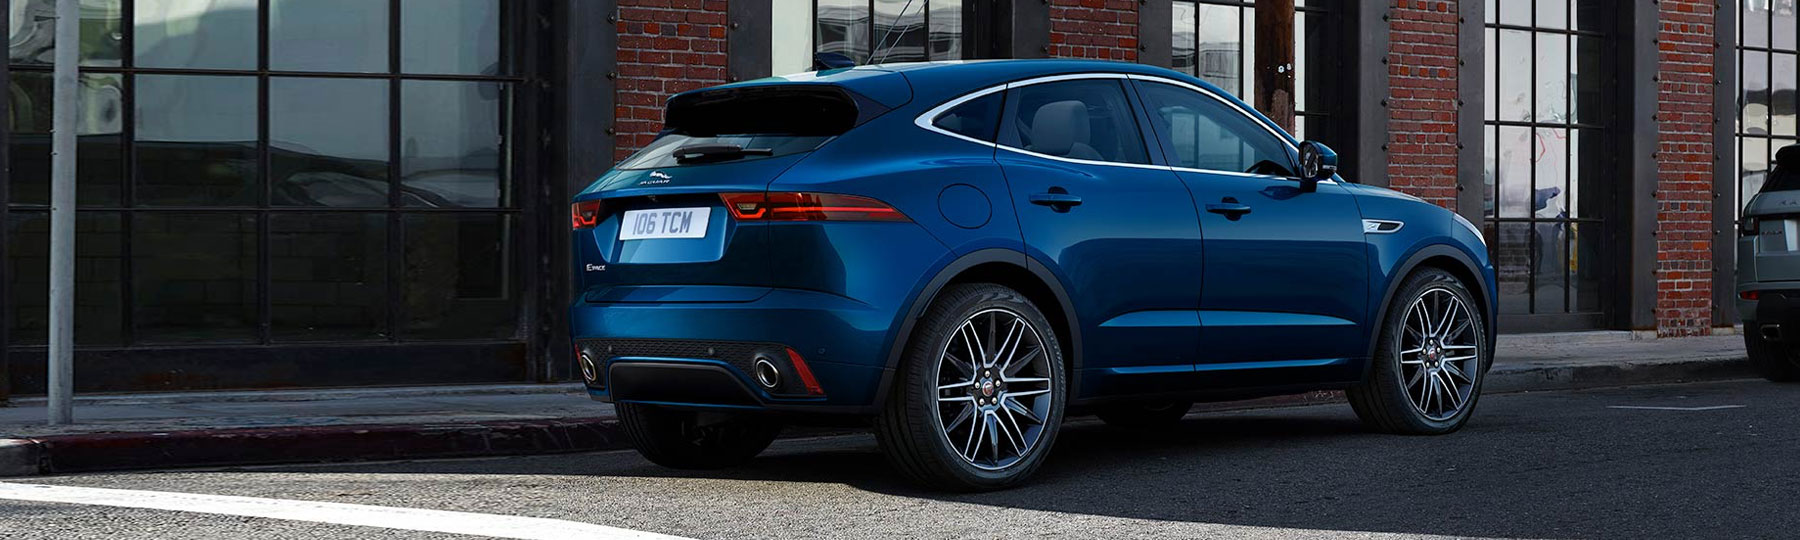 New Jaguar E-PACE Business Offer